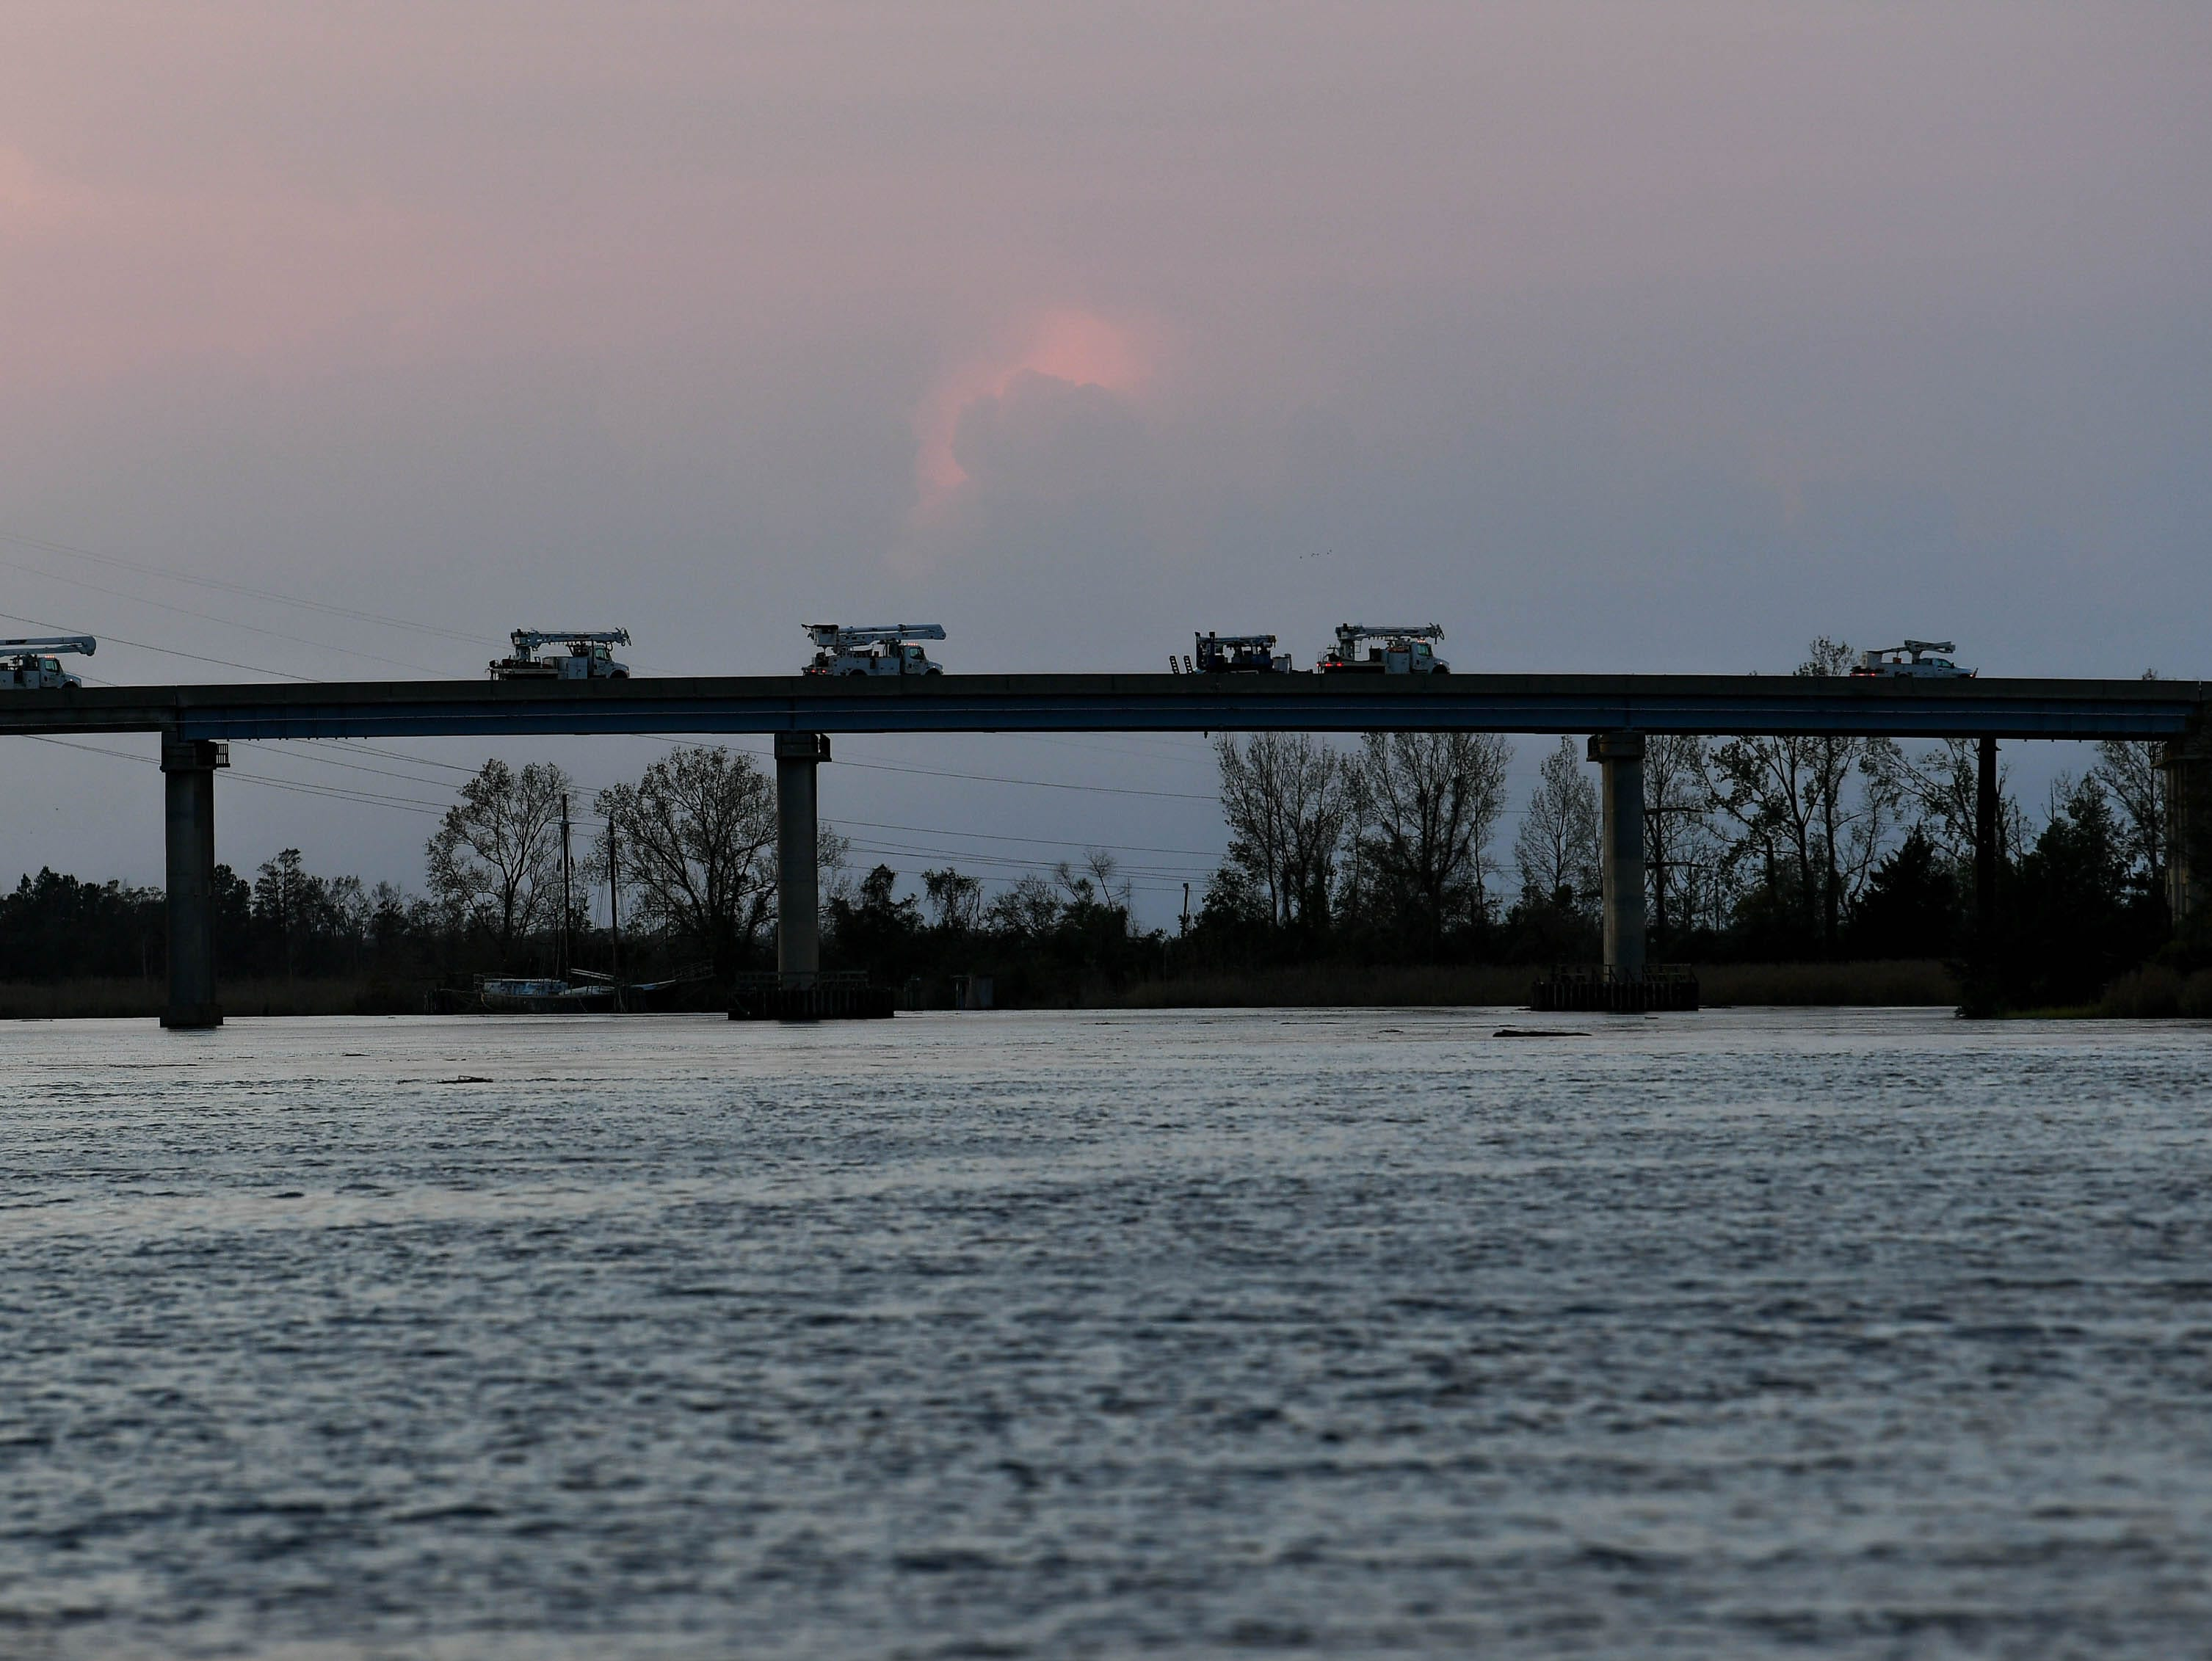 Utility crews move across a bridge on the opposite side of the Cape Fear River from Wilmington, NC Monday evening, Sept. 17, 2018. The Cape Fear River is expected to crest on Tuesday, September 18.